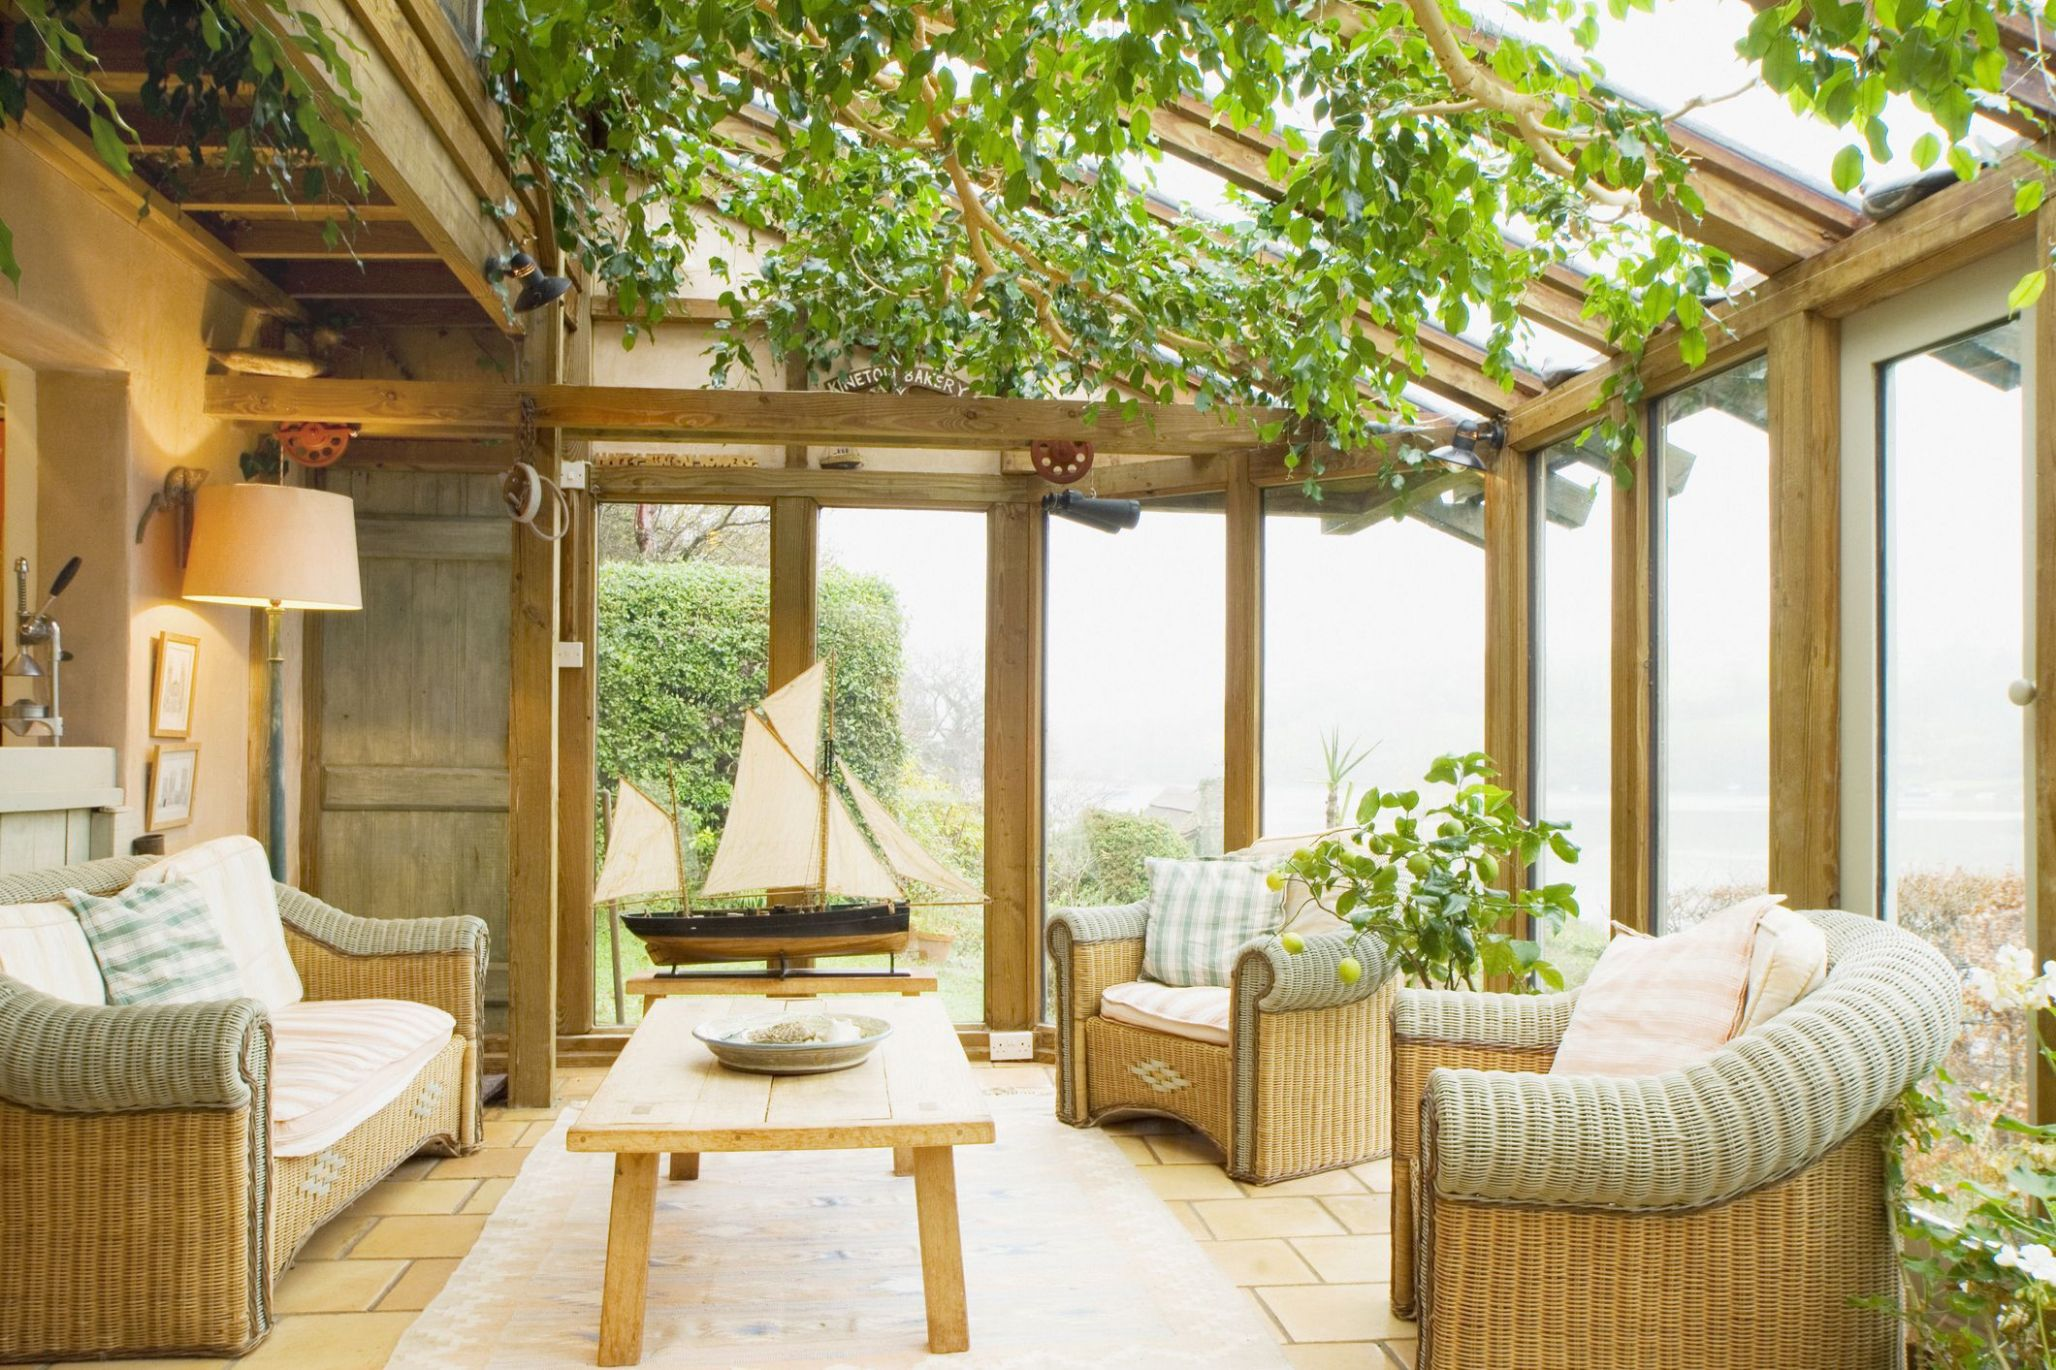 9 Best Sunroom Ideas - Gorgeous Sunroom Designs and Pictures - sunroom ideas modern